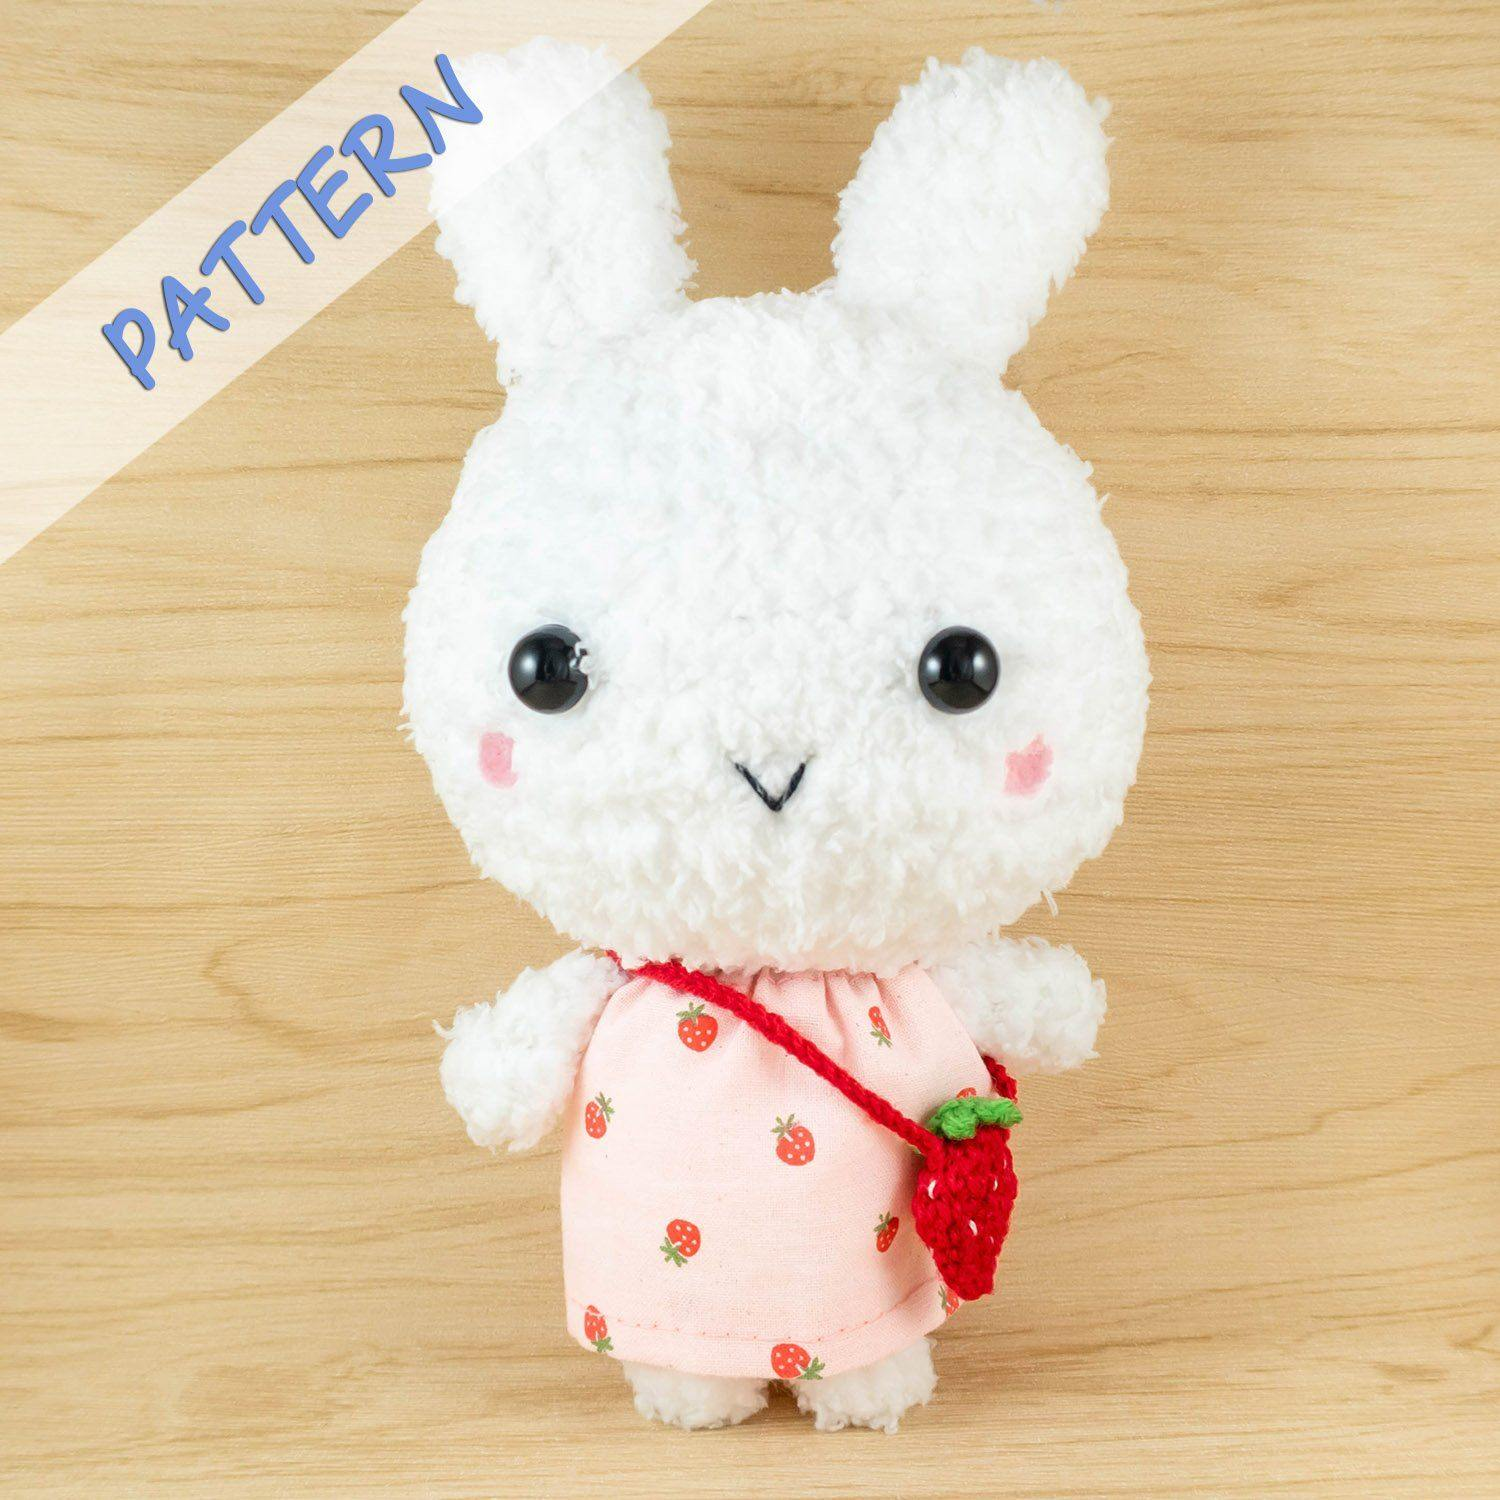 20 Easy and Adorable Crochet Toys That'll Melt Your Heart - Ideal Me | 1500x1500